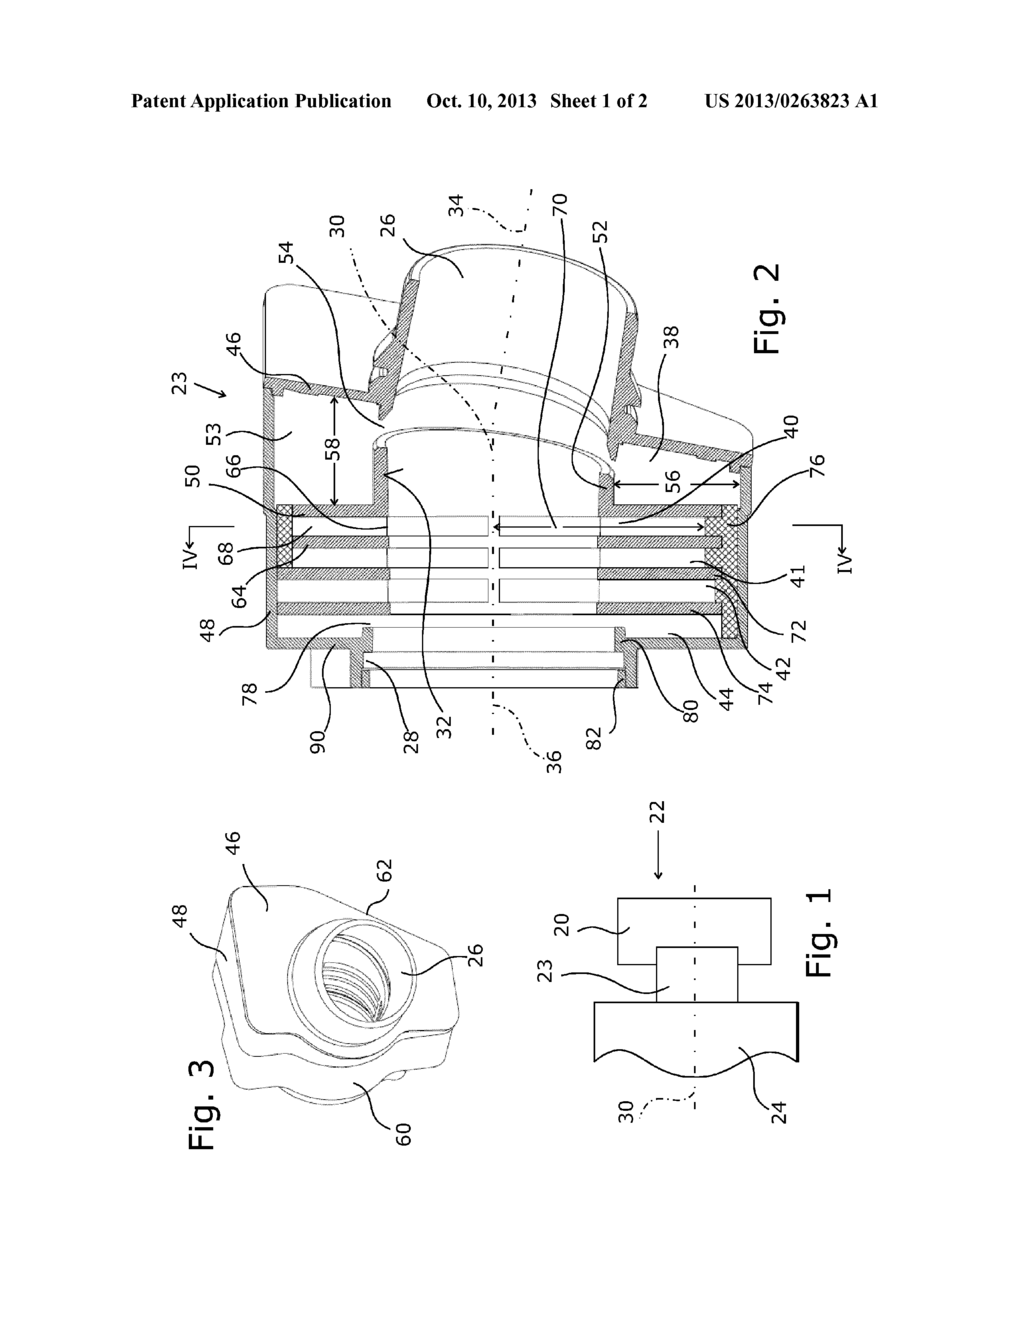 hight resolution of disc damper for charge air lines of an internal combustion engine having a turbocharger diagram schematic and image 02